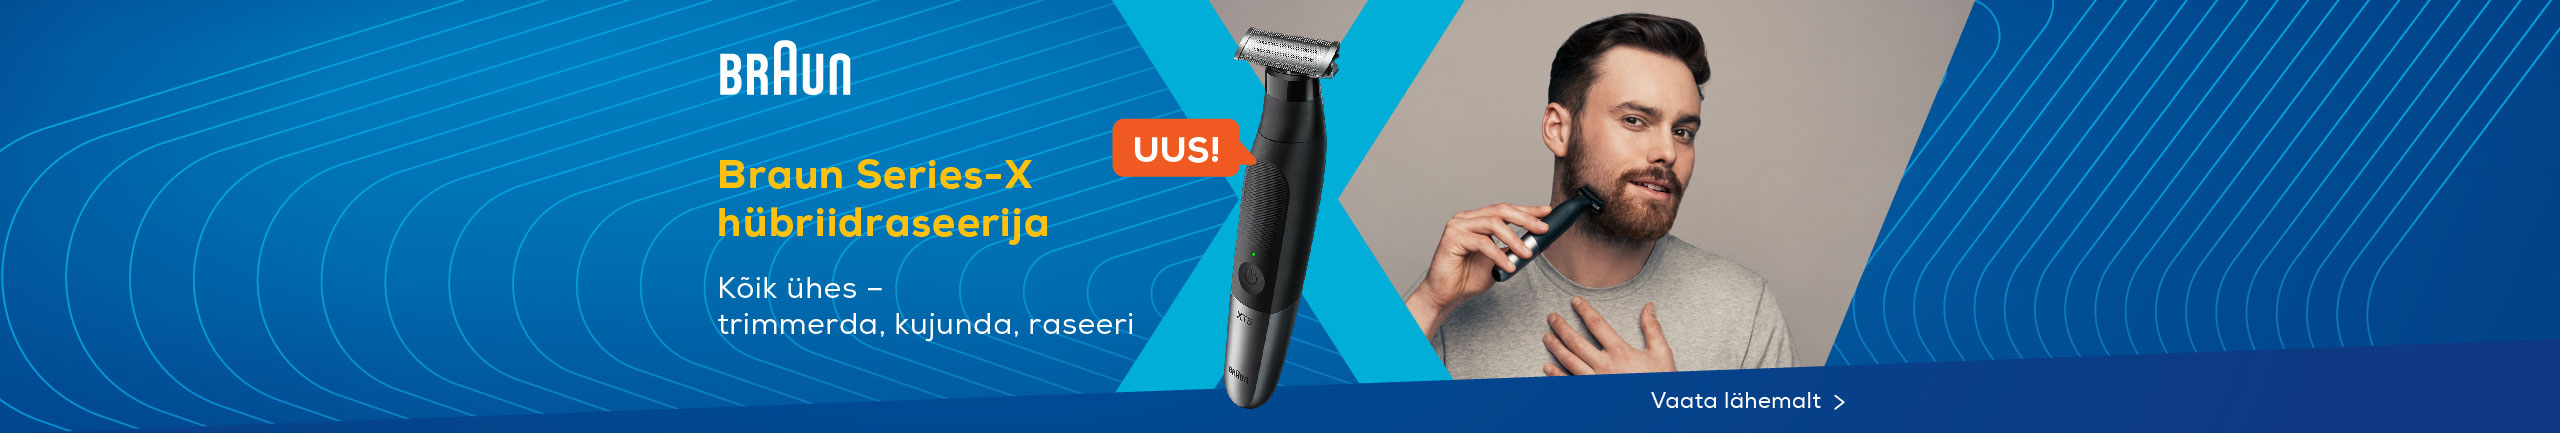 Braun Series X - trim, style and shave